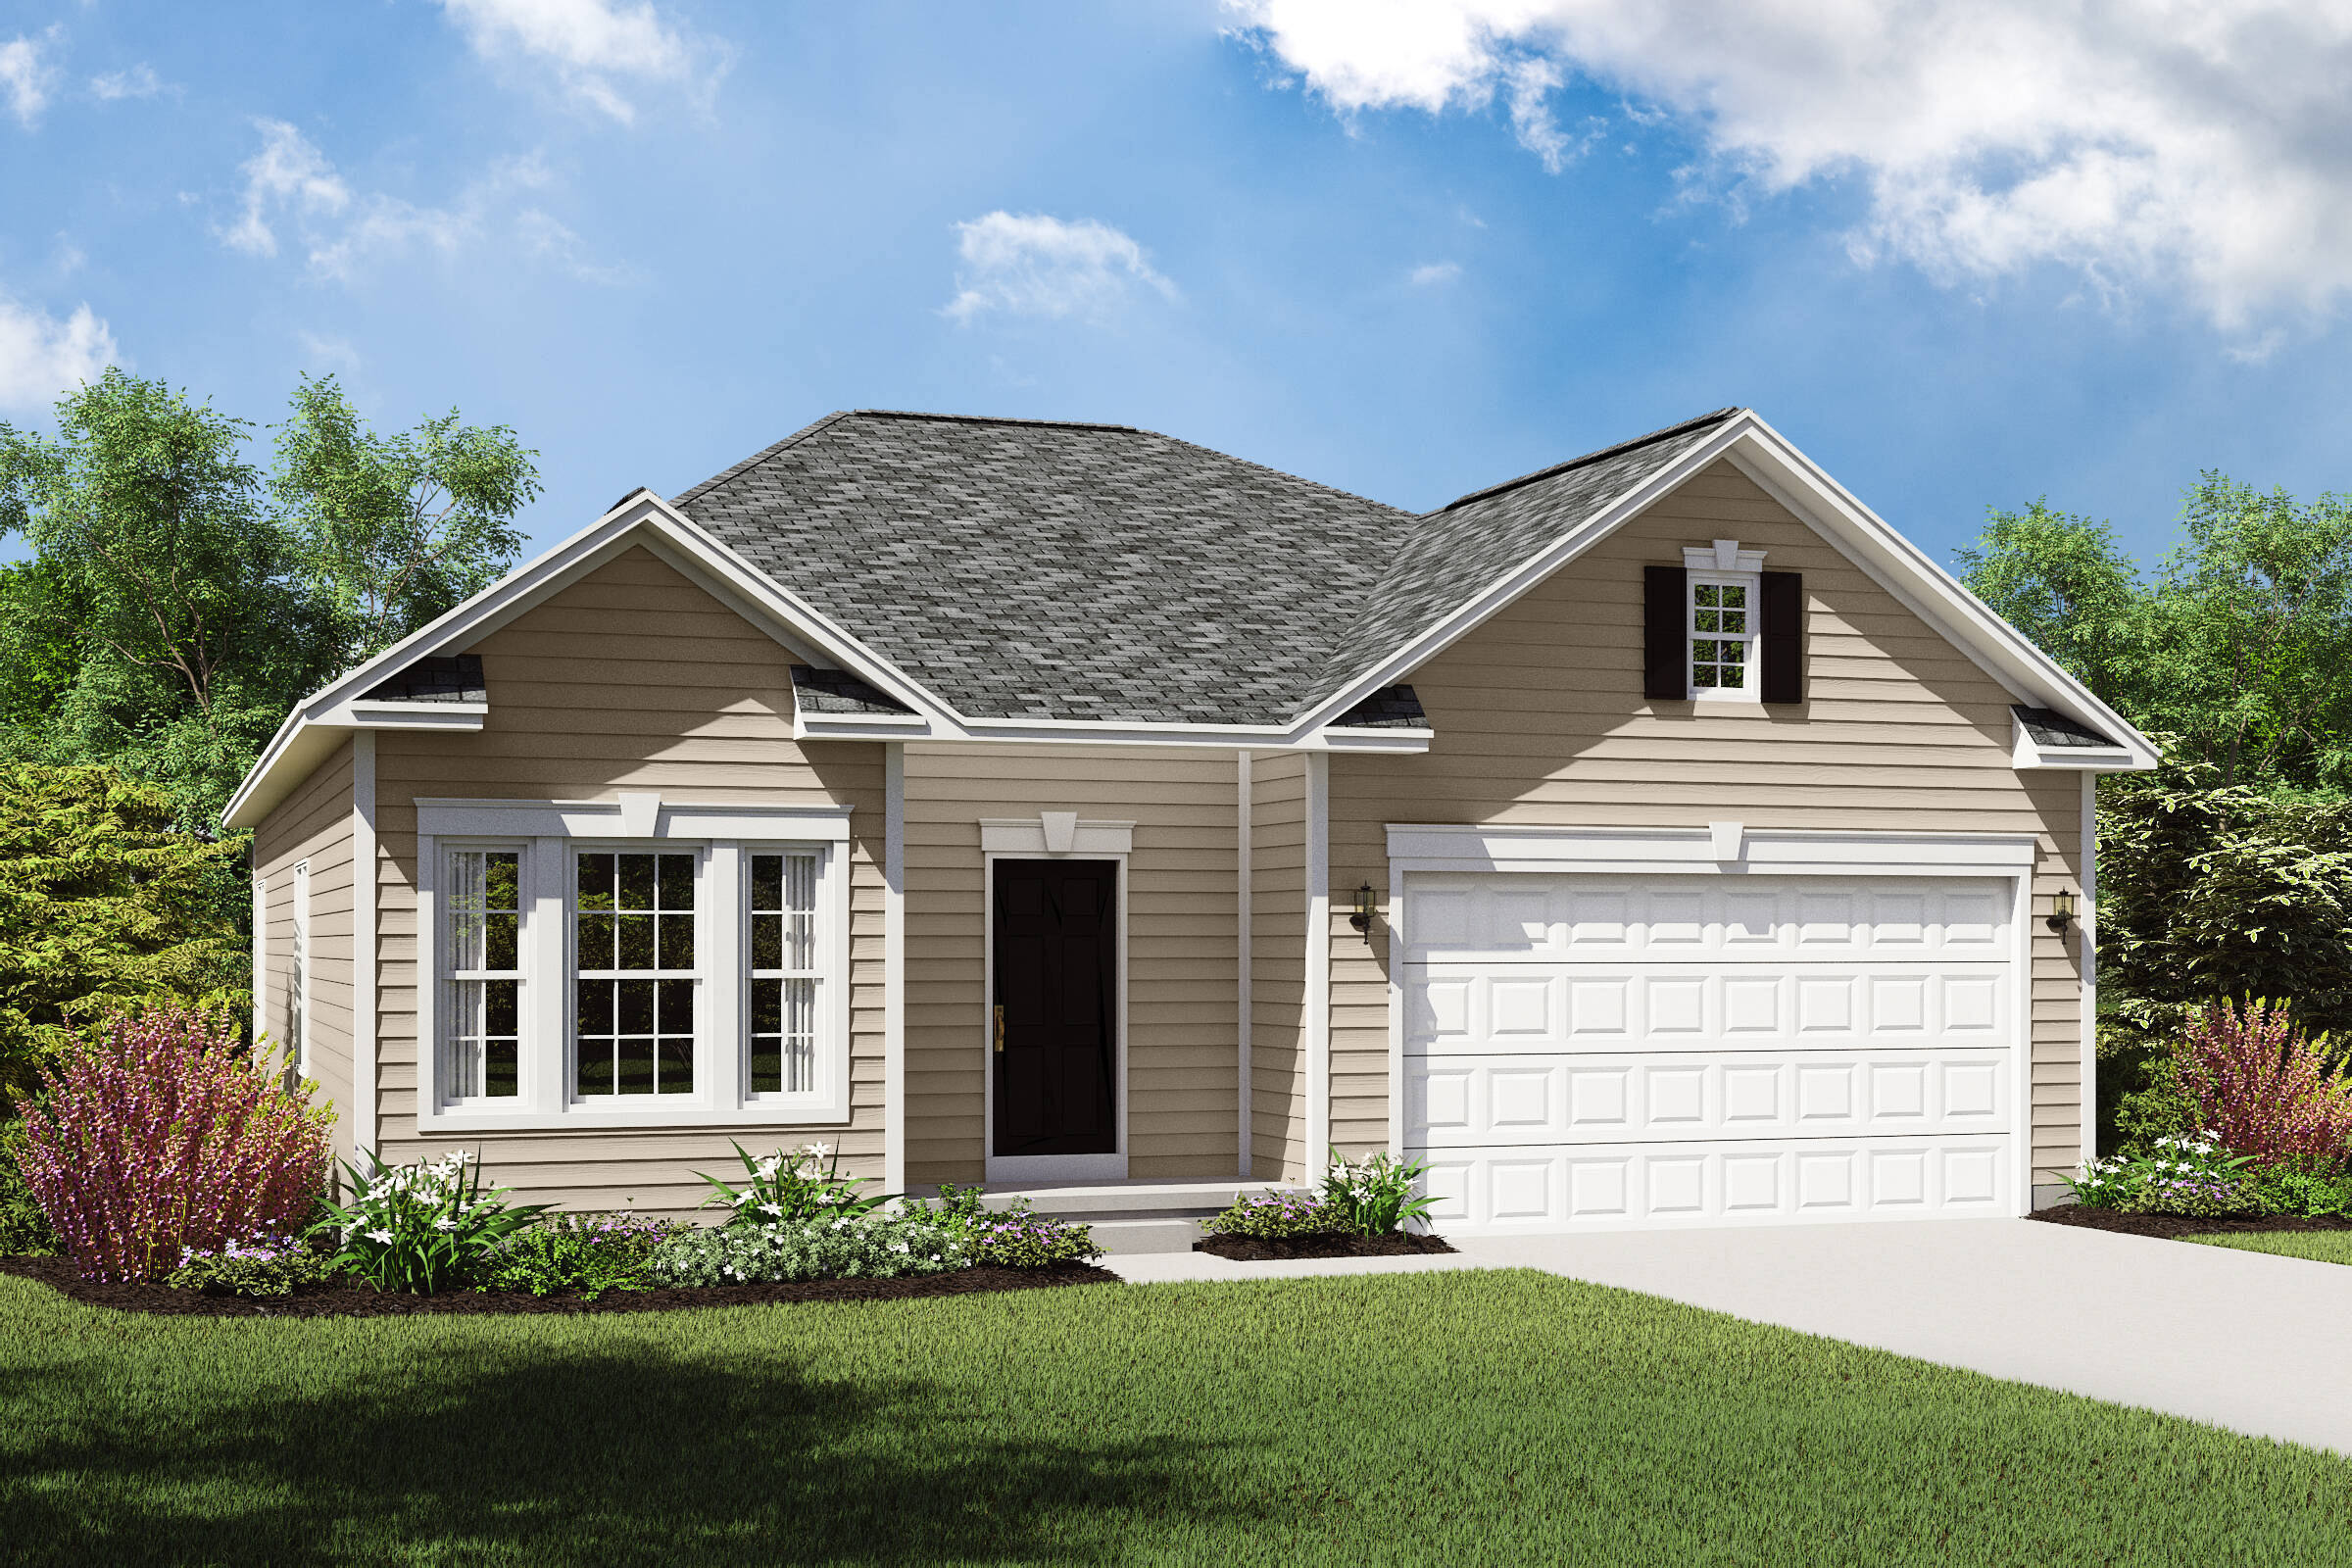 bedford gs single story new homes northeast ohio